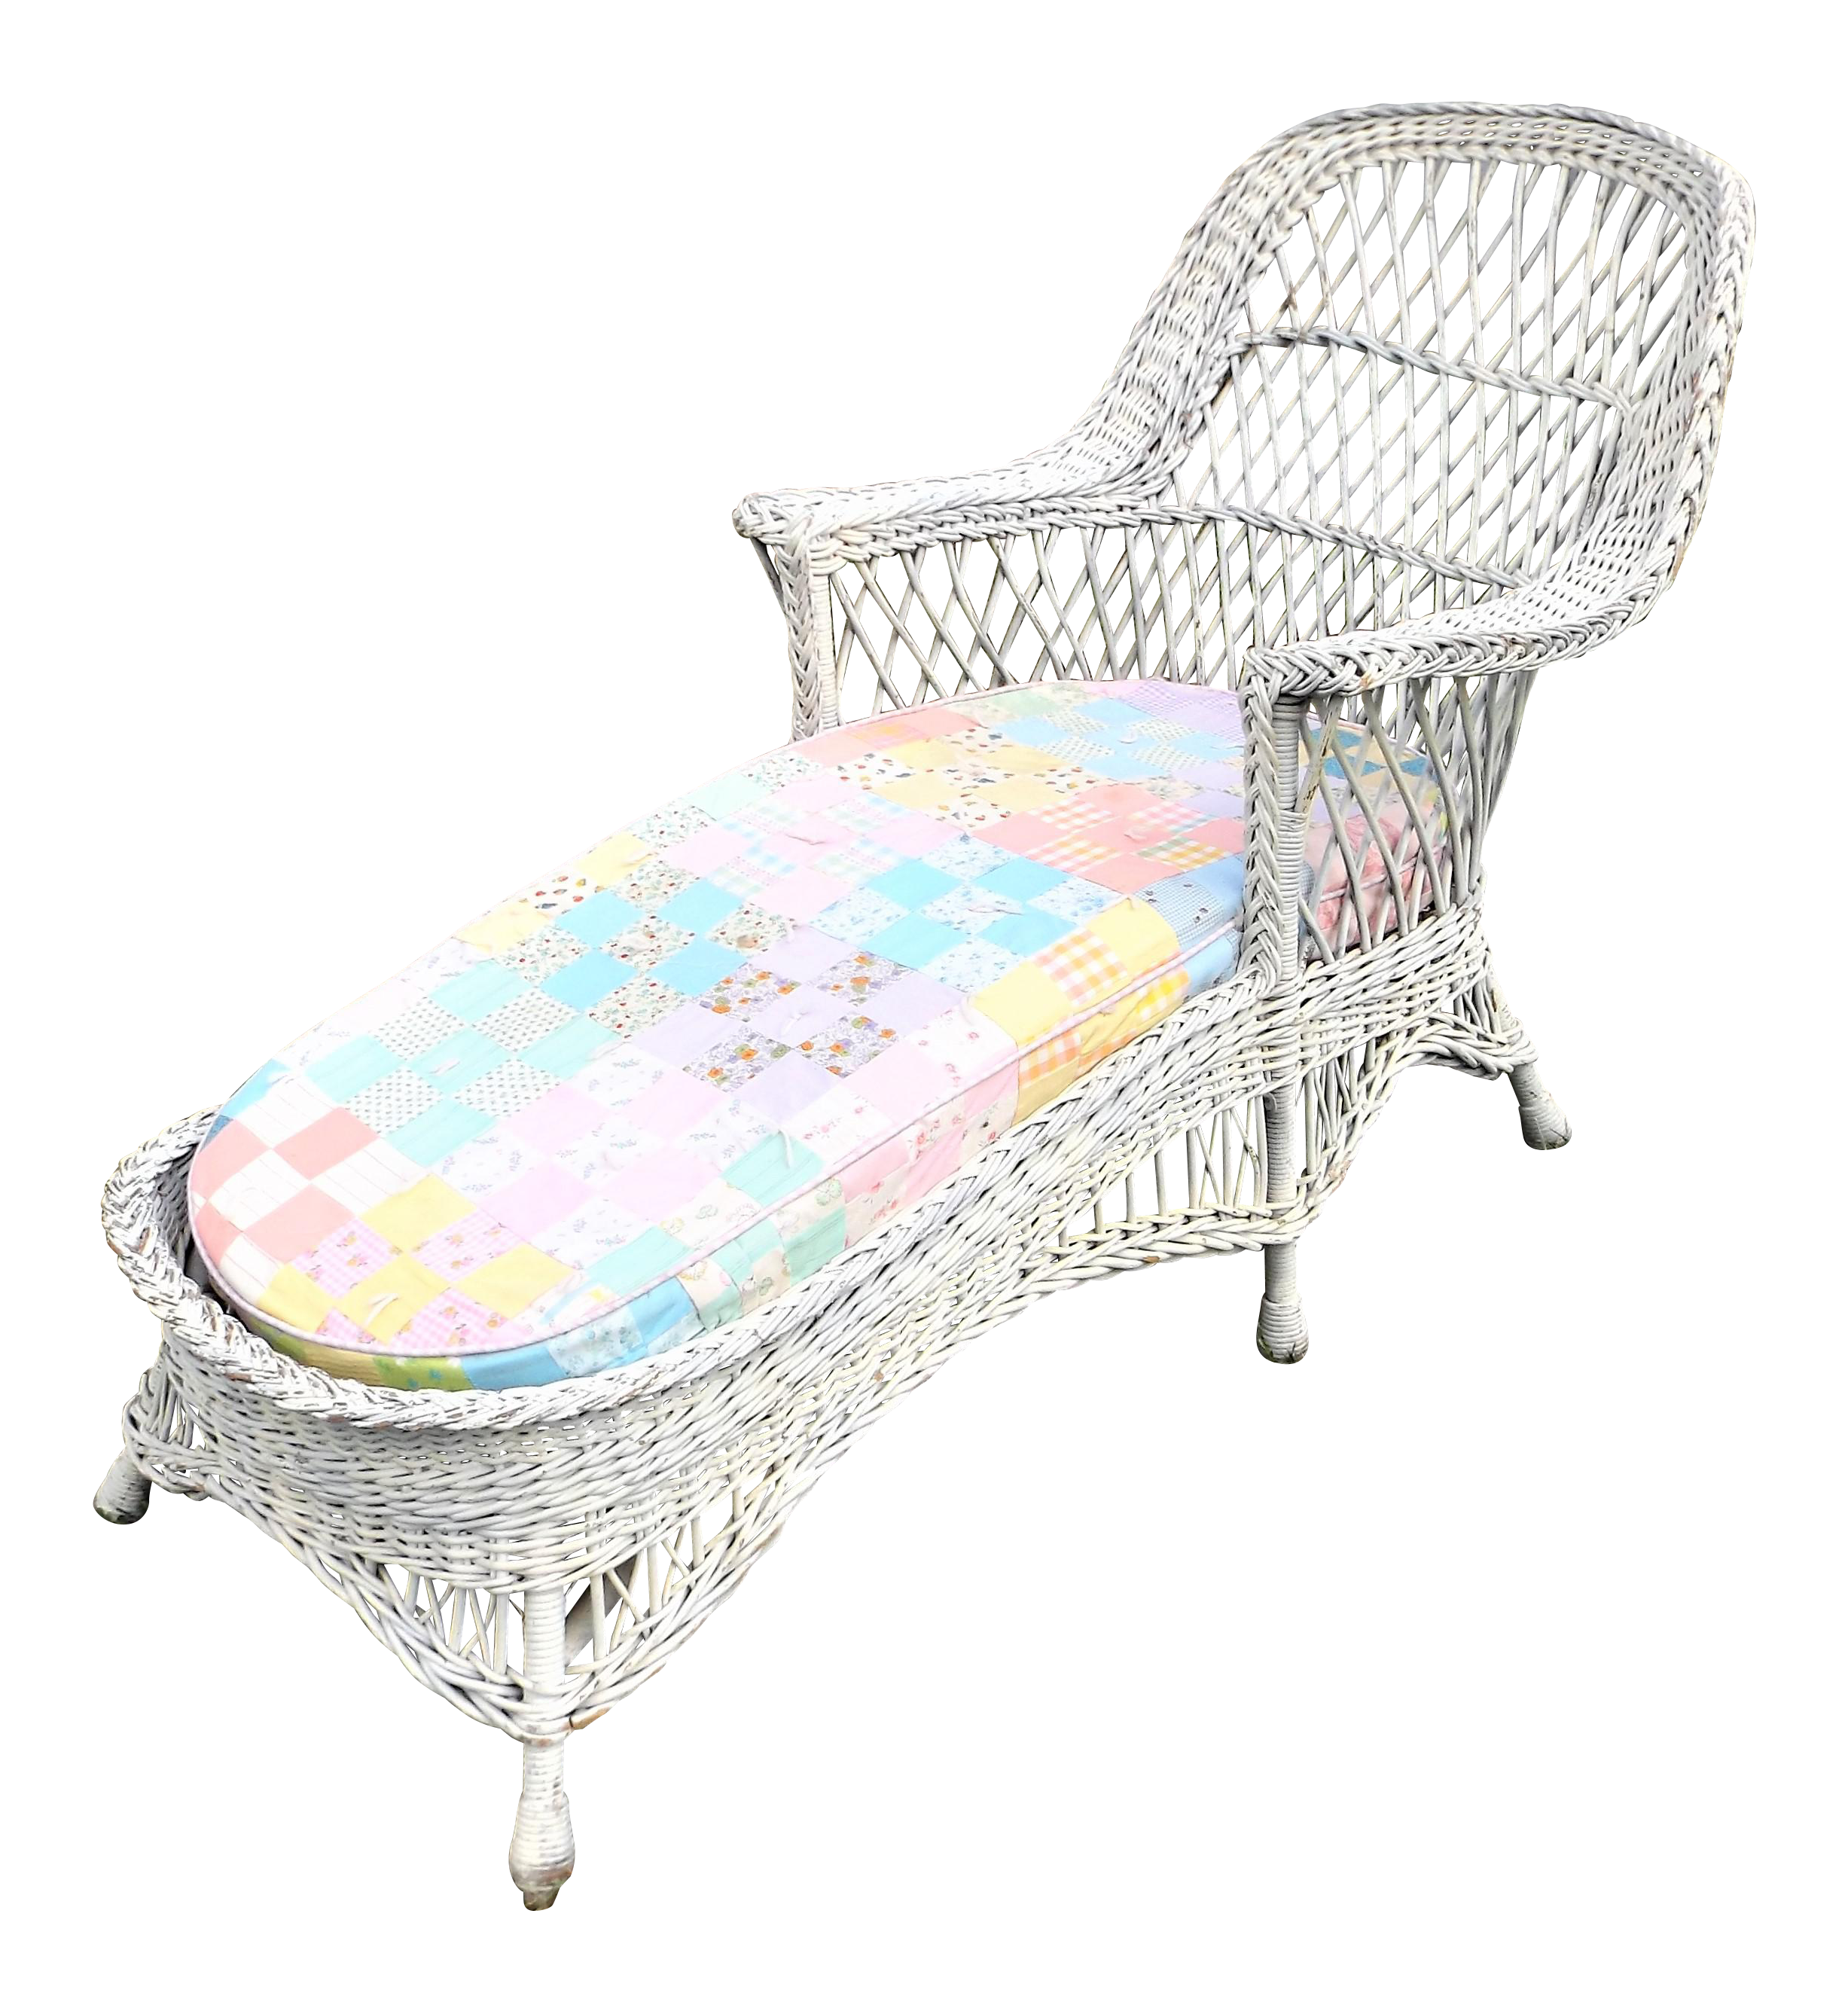 Vintage 1940s Wicker Chaise photo - 7